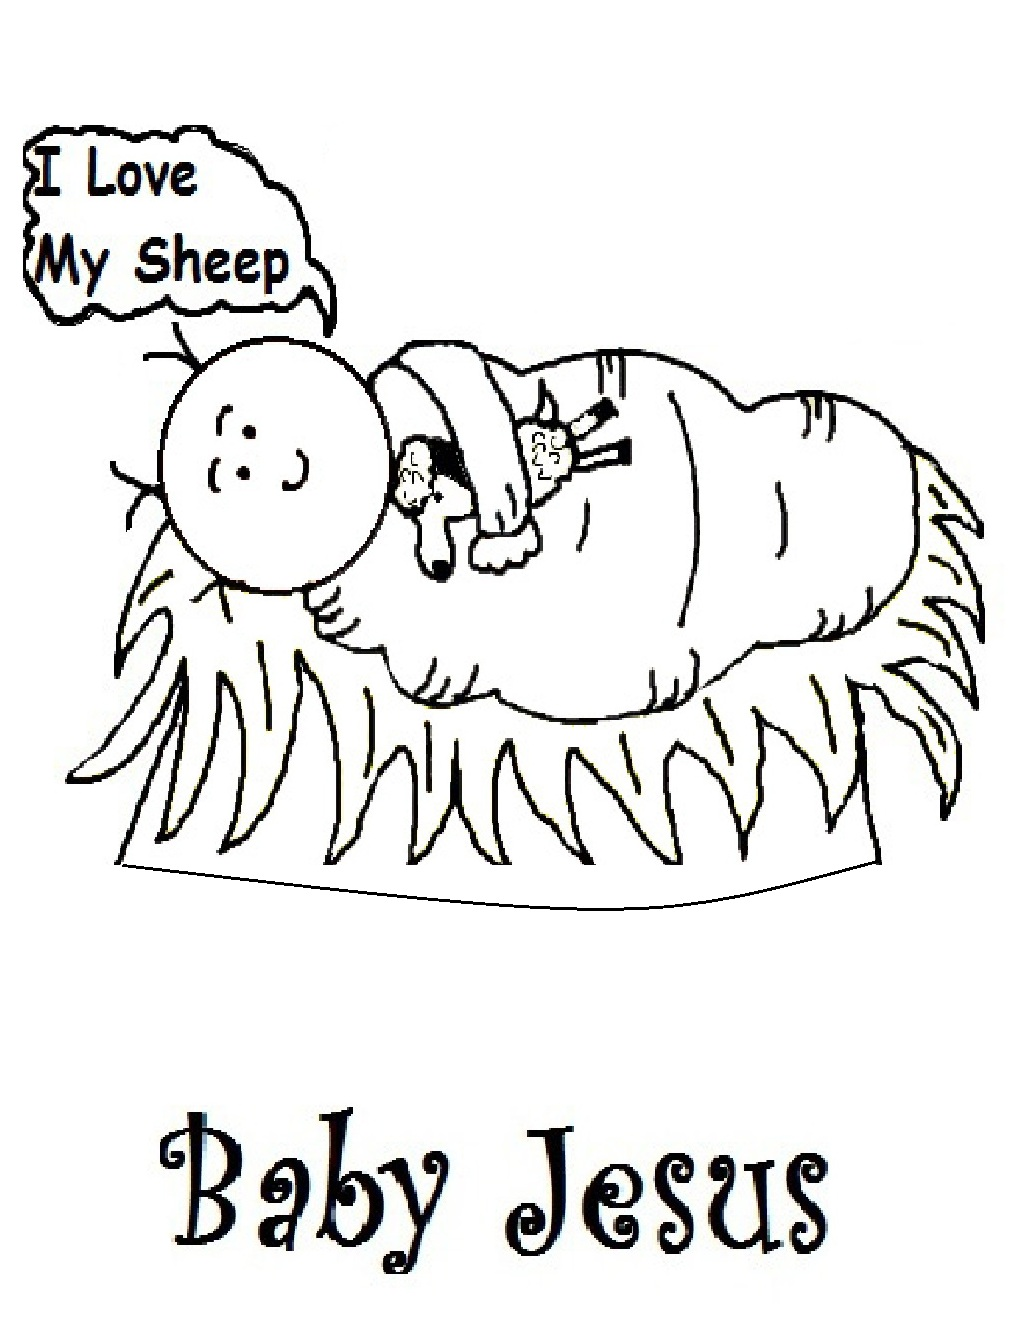 coloring pages of baby jesus - photo#22